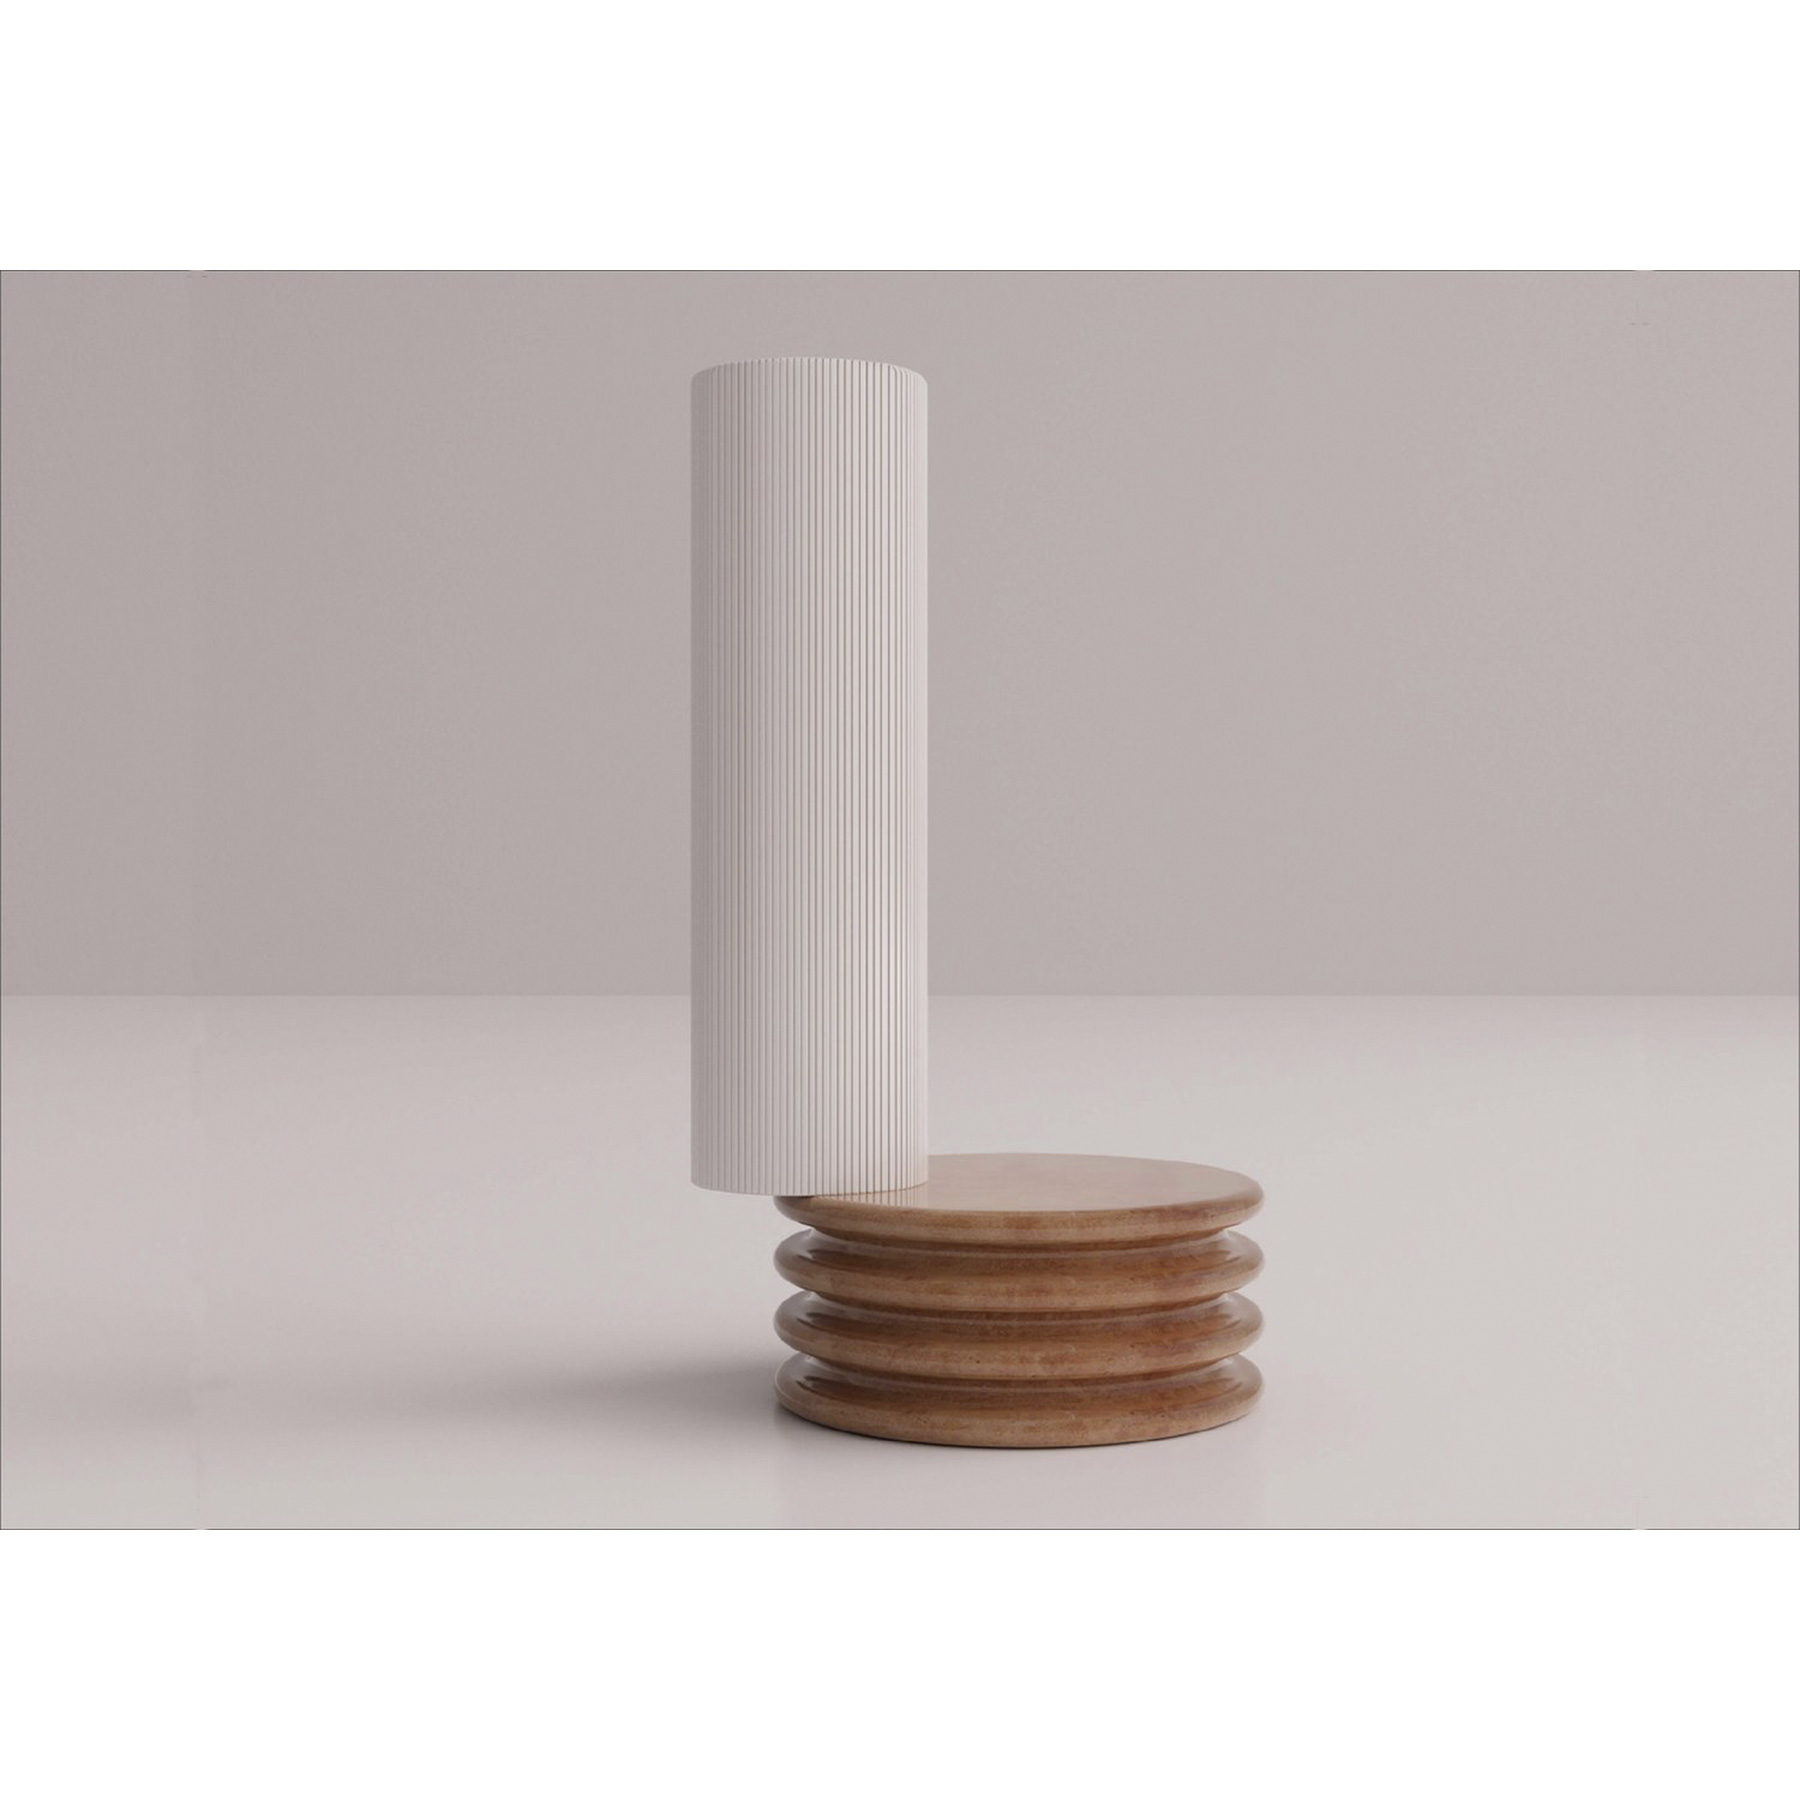 Colonne 2 Element Vase - As asymmetrical as it is elegant, this whimsical vase crafted of first-rate ceramic is part of an exquisite collection presented at the 2019 Milan Design Week. The piece is composed of two cylindrical elements: the painted-white, longer one partially rests on the other that is painted in a delicate hue of terracotta and enlivened by ribbed sides and a flat top.   Matter of Stuff